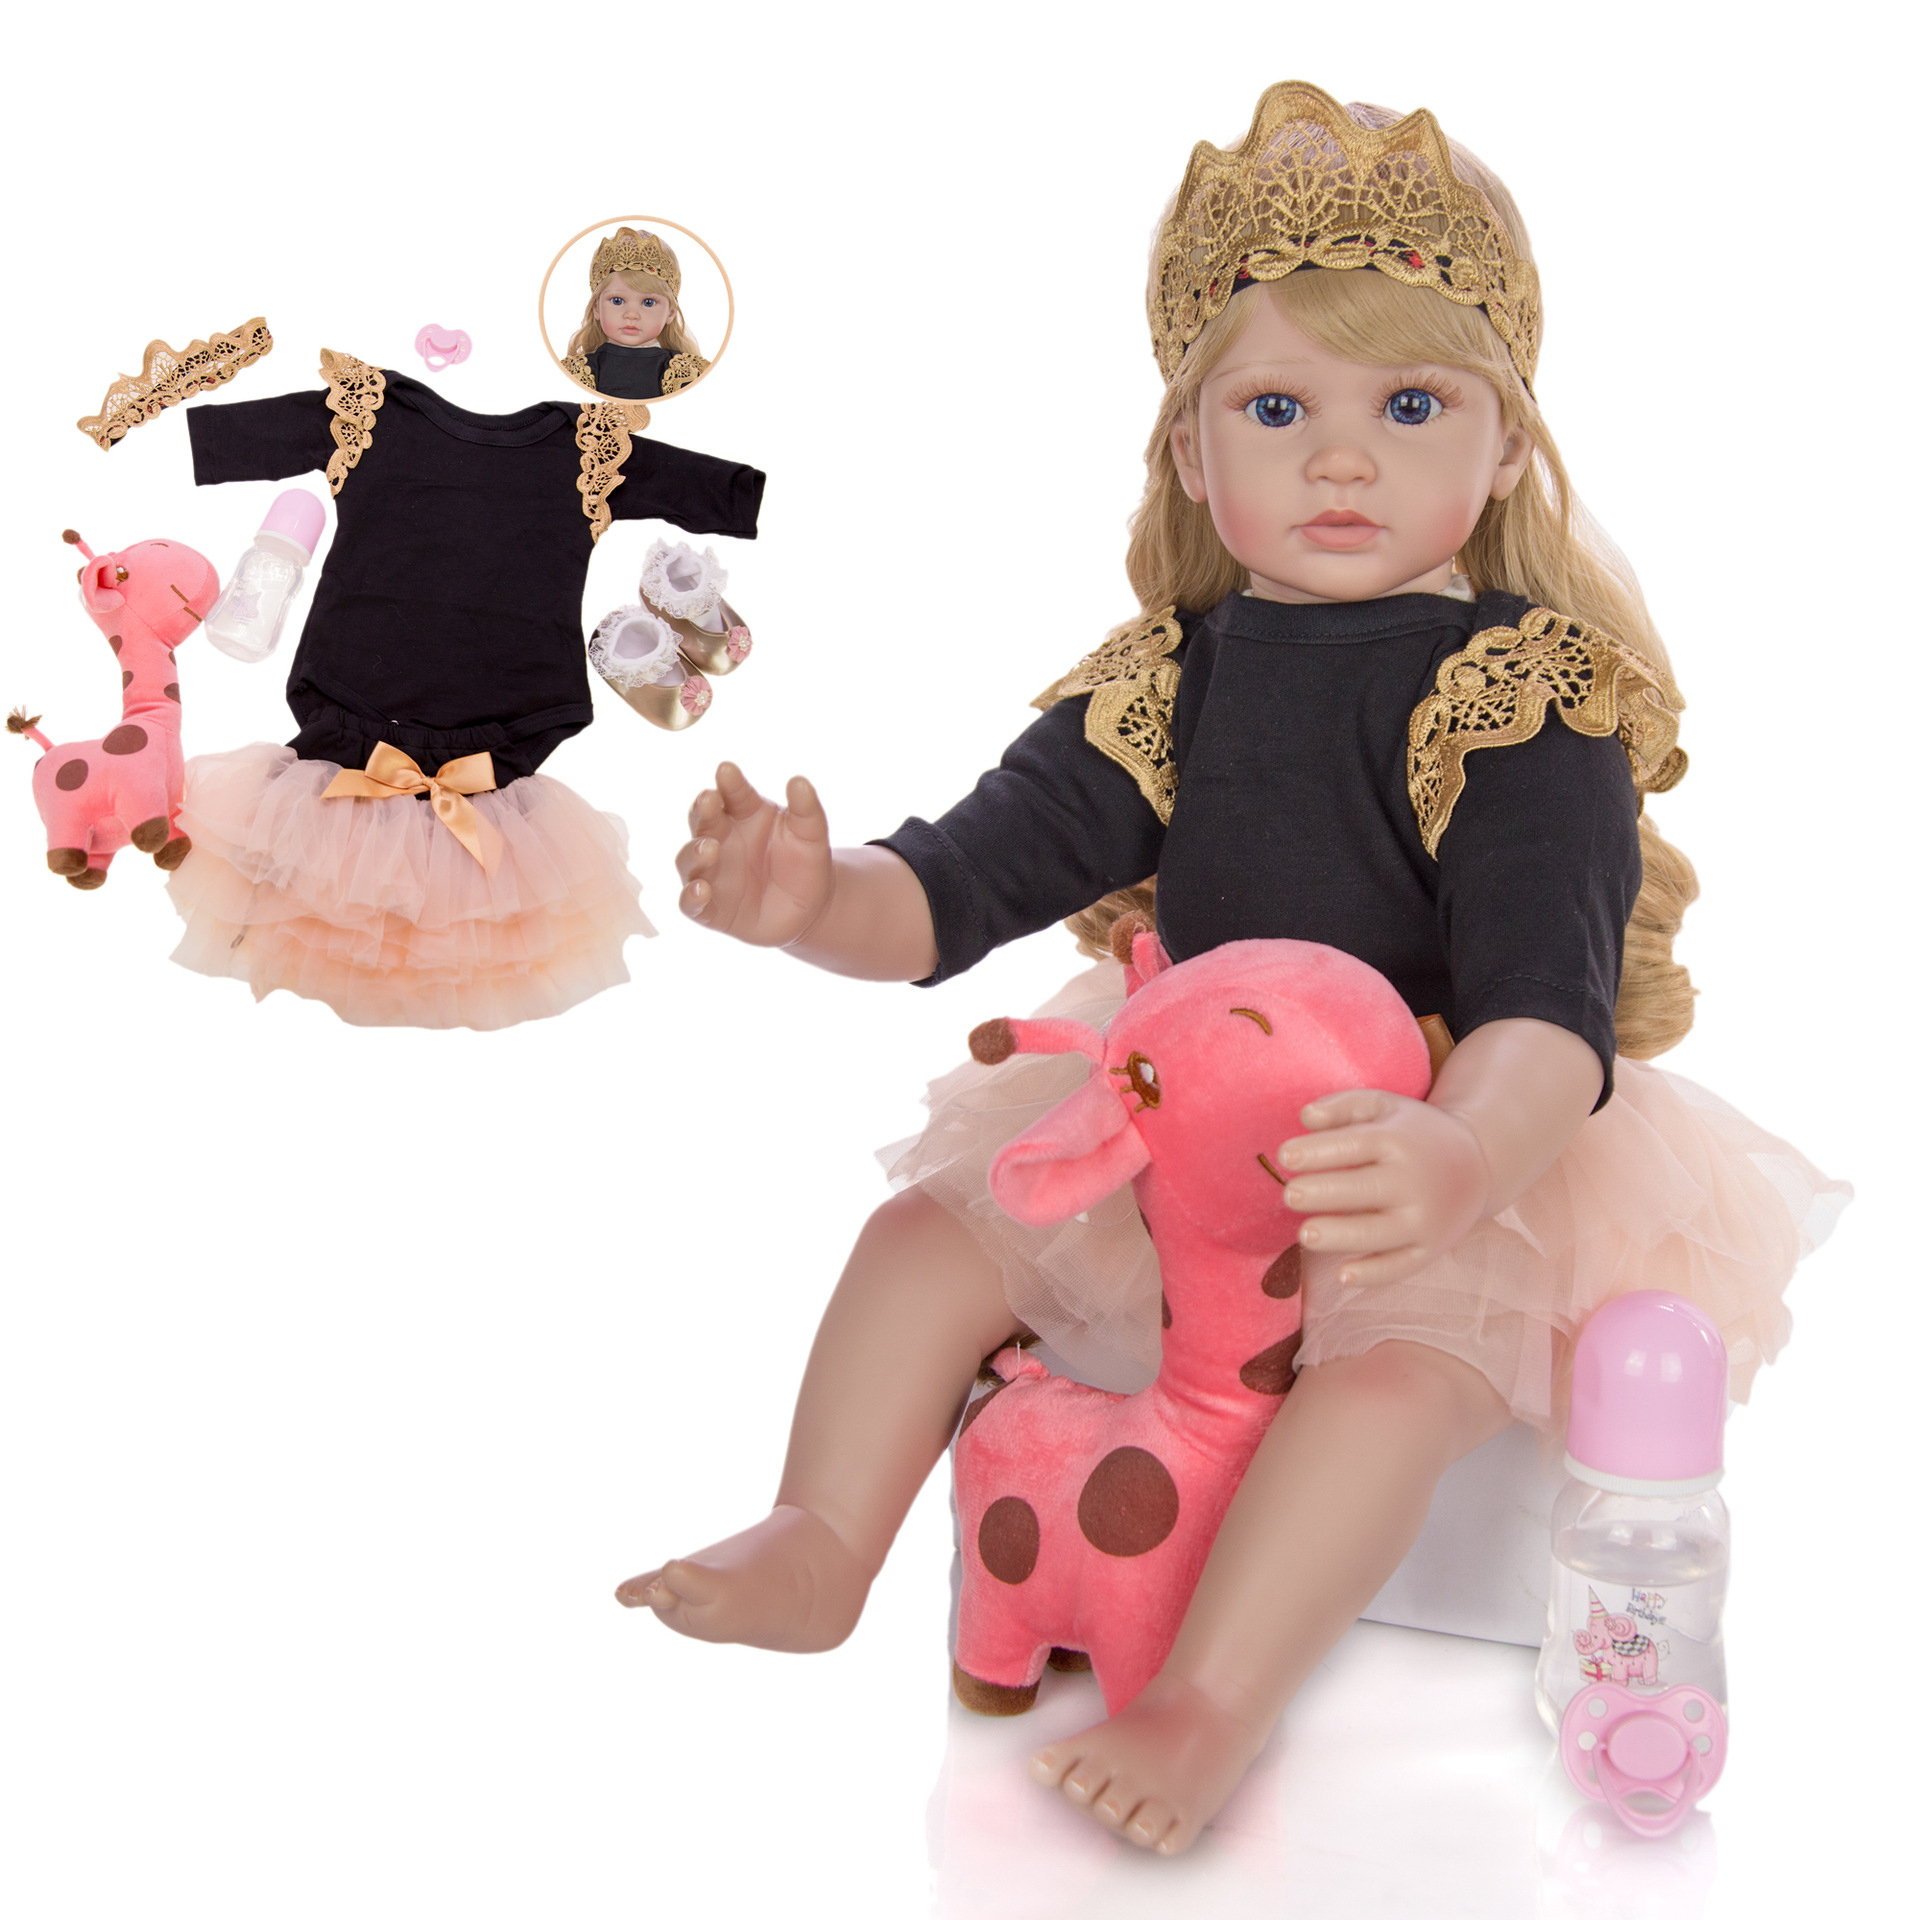 <font><b>60</b></font> <font><b>cm</b></font> Silicone Vinyl <font><b>Reborn</b></font> Baby <font><b>Doll</b></font> Lifelike Princess <font><b>Doll</b></font> With Blond Hair Girls toddler Play <font><b>Doll</b></font> Toys Birthday Gift image